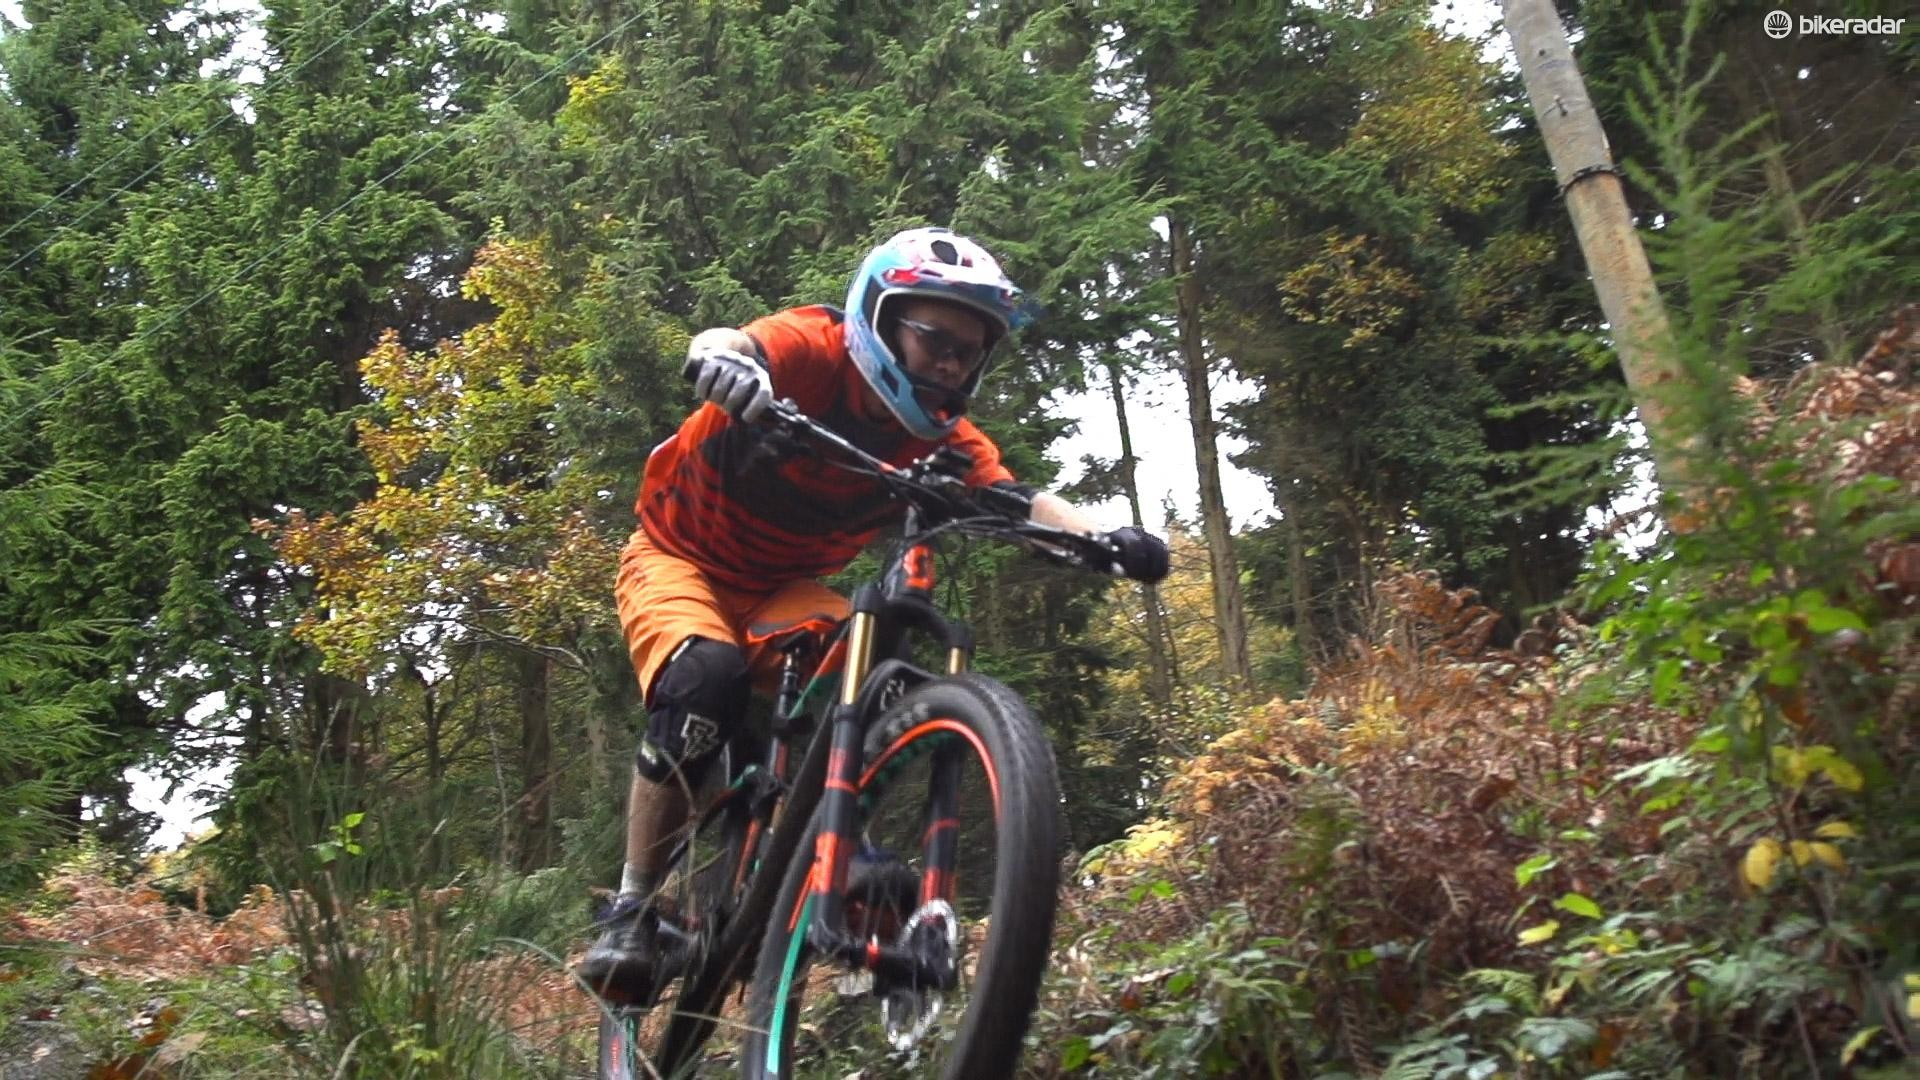 I picked a descent that wouldn't be out of place in an enduro race, with plenty of technical features and drops